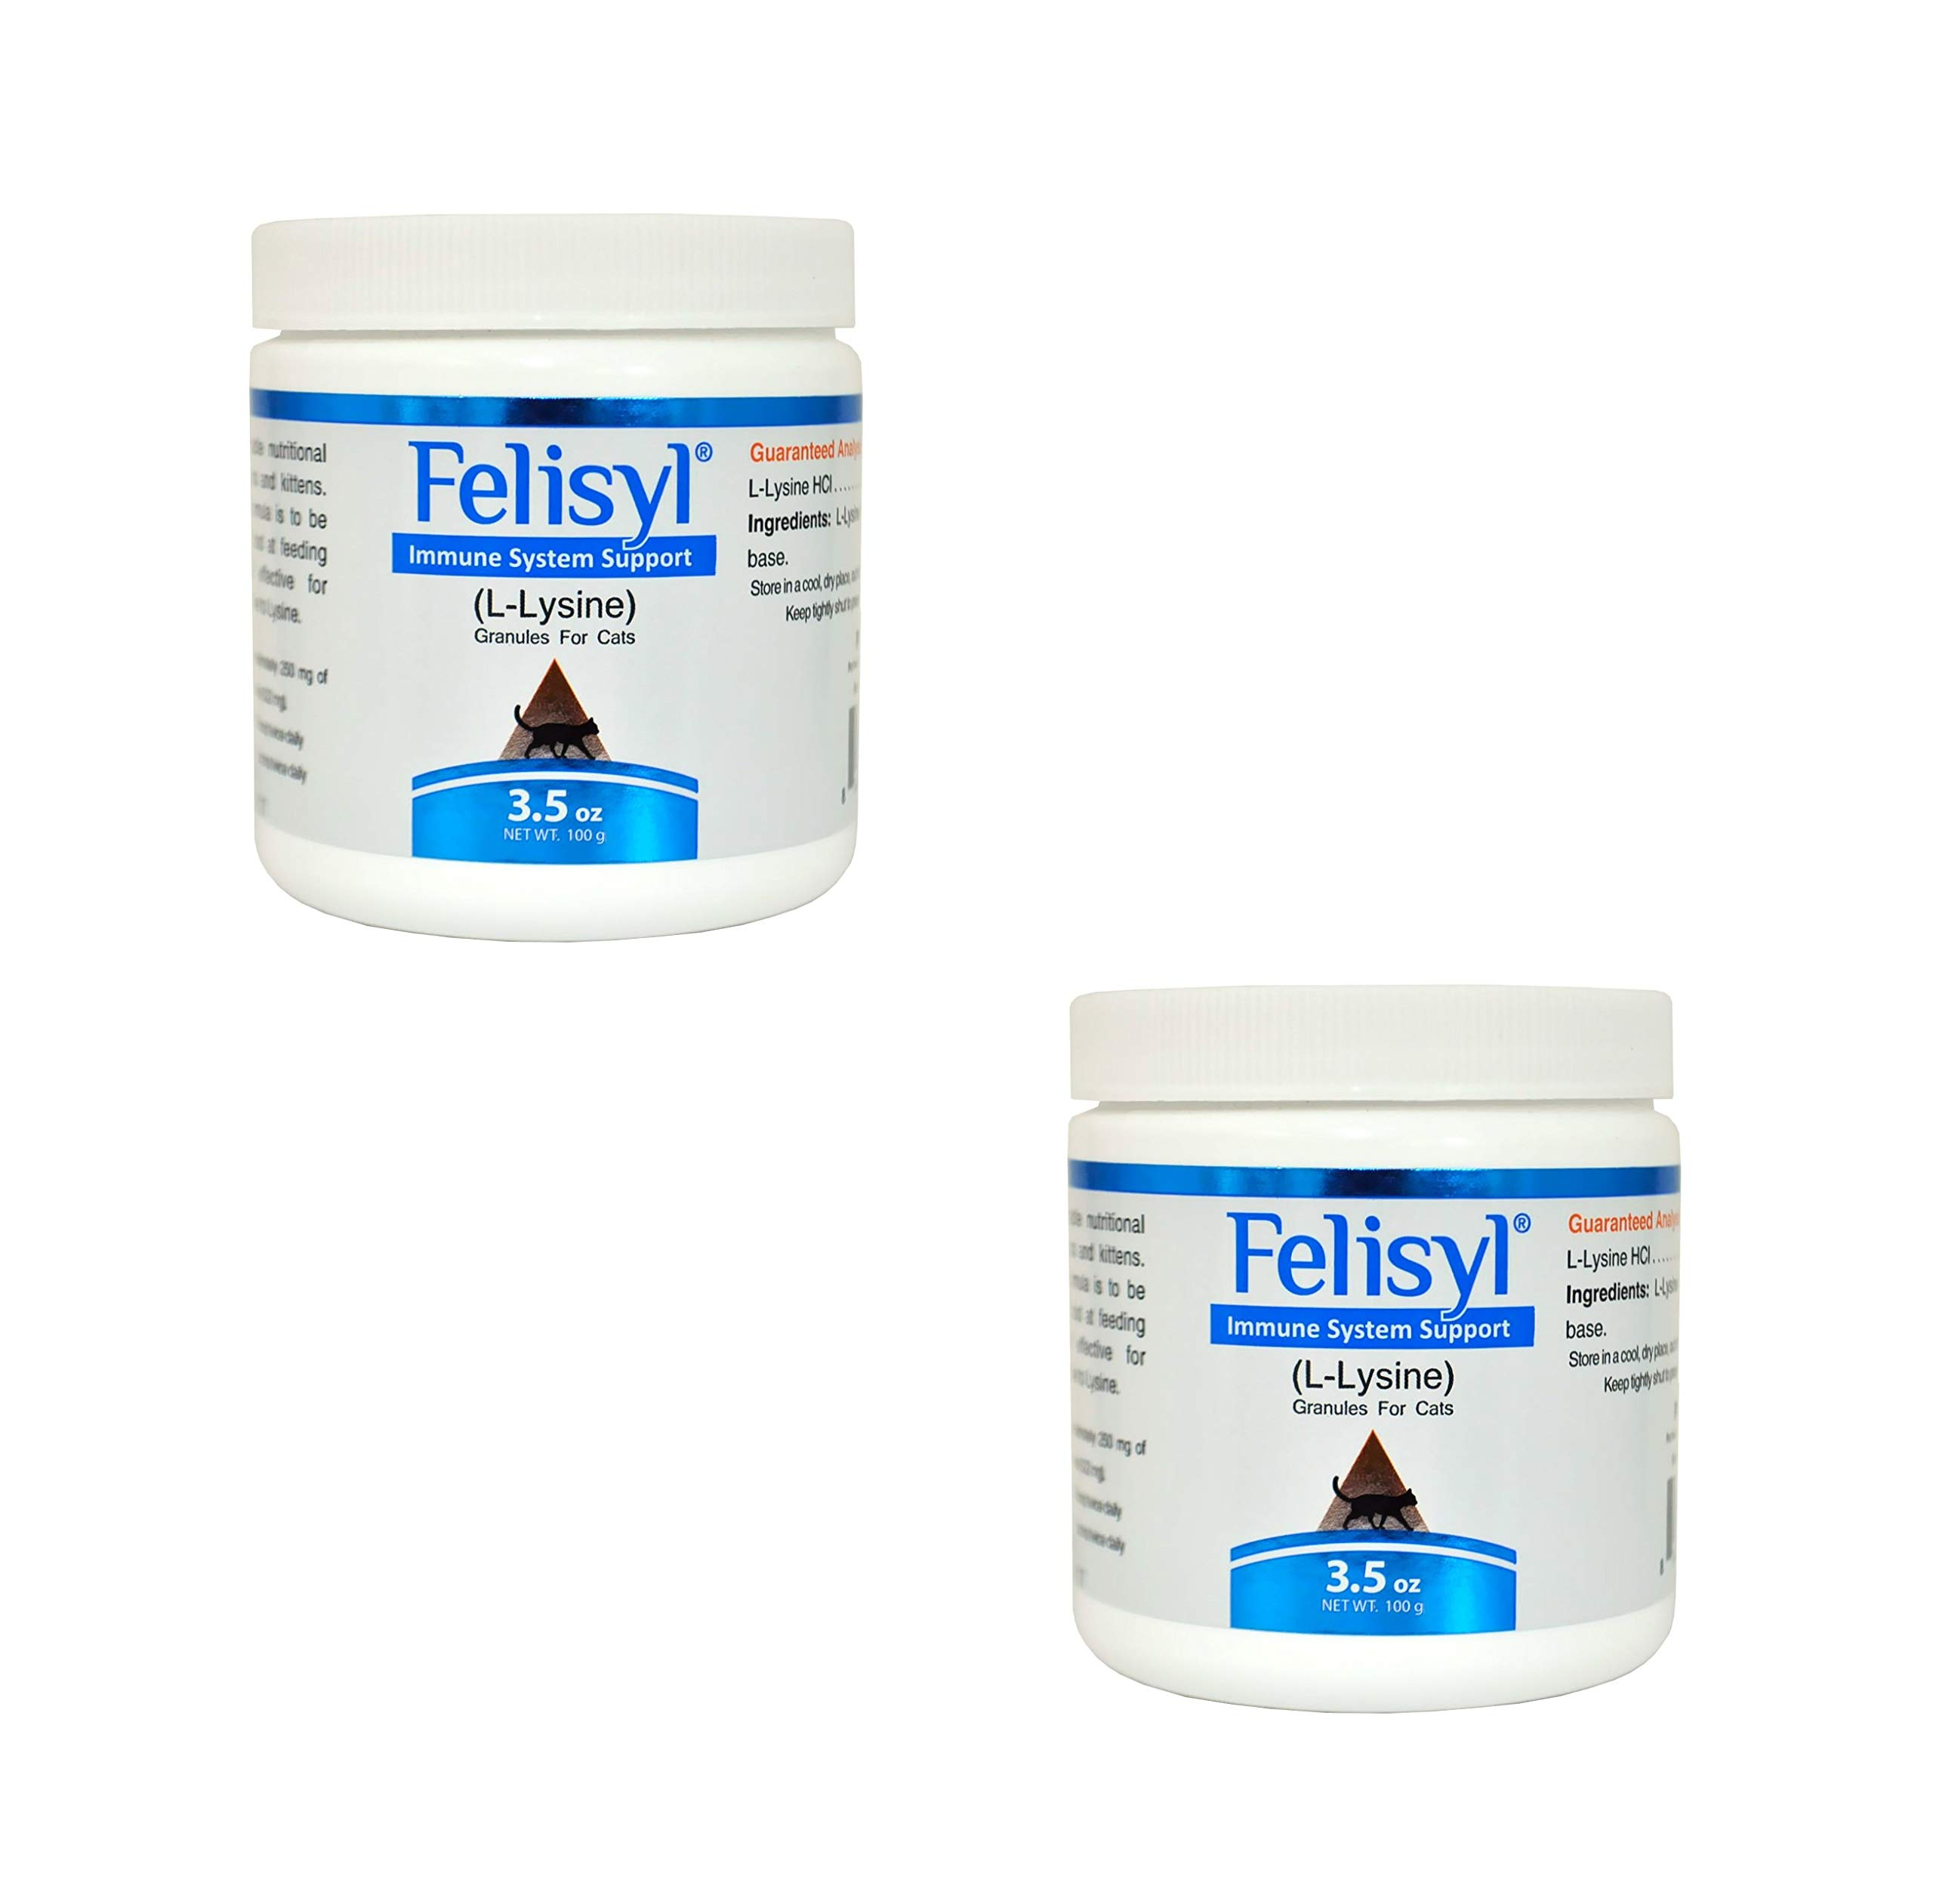 Felisyl Immune System Support Granules - Support Healthy Tissues, Respiratory and Vision for Cats - 3.5 oz (2 Pack)